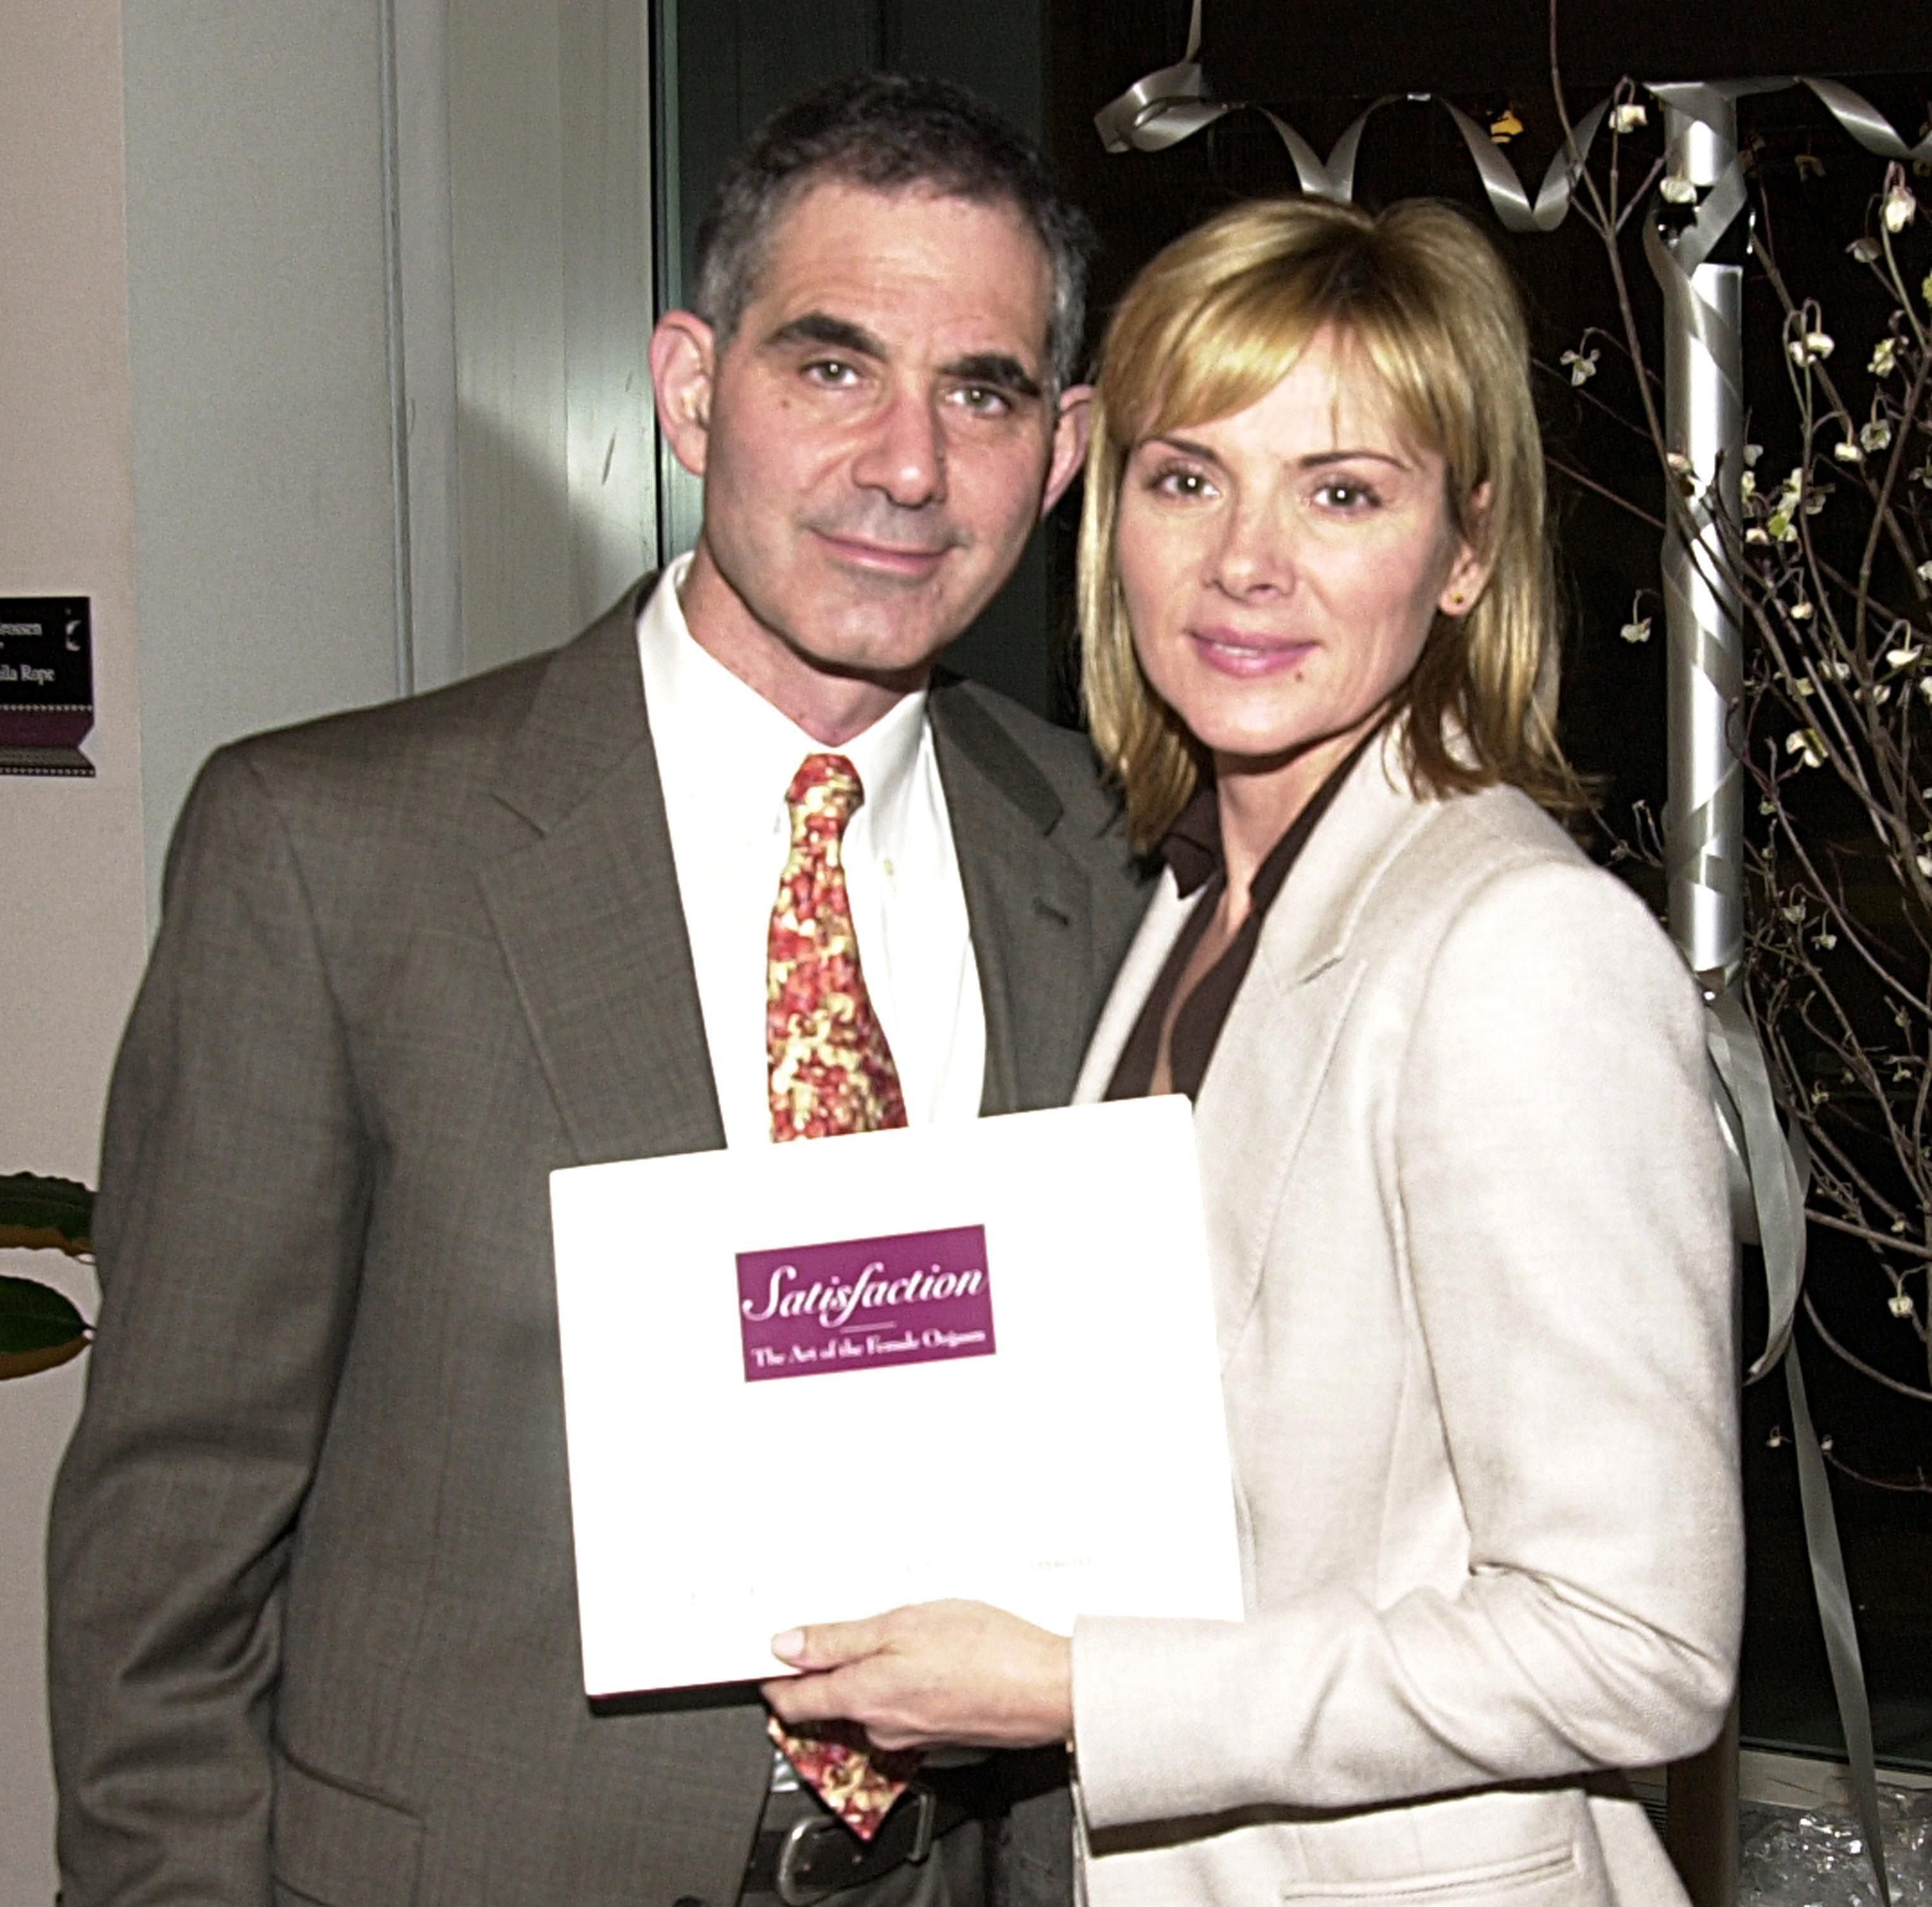 Mark Levinson and Kim Cattrall at a book signing in New York City in 2002 | Source: Getty Images